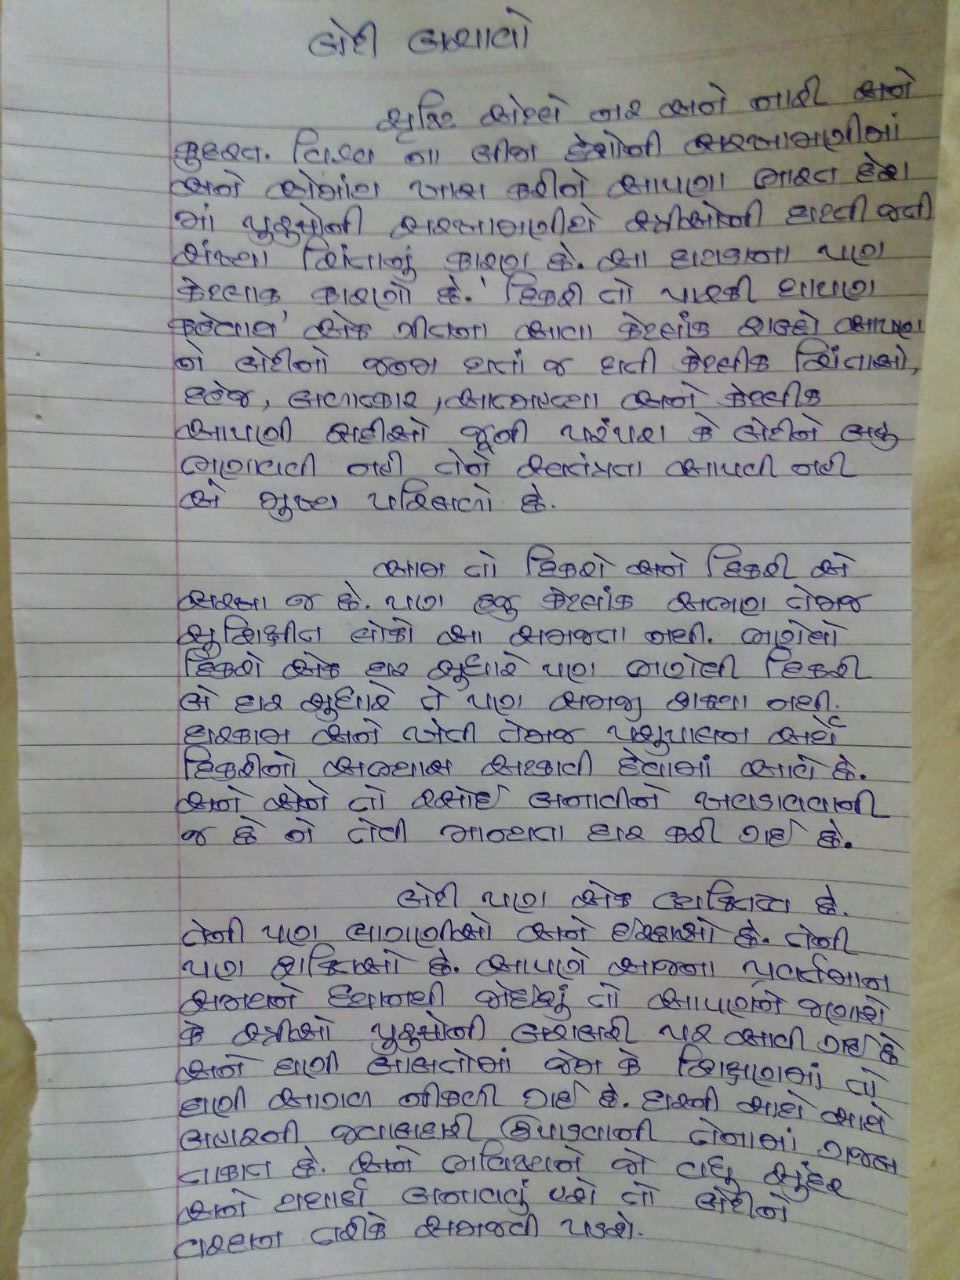 gujarati essay on beti bachao a funny incident essay